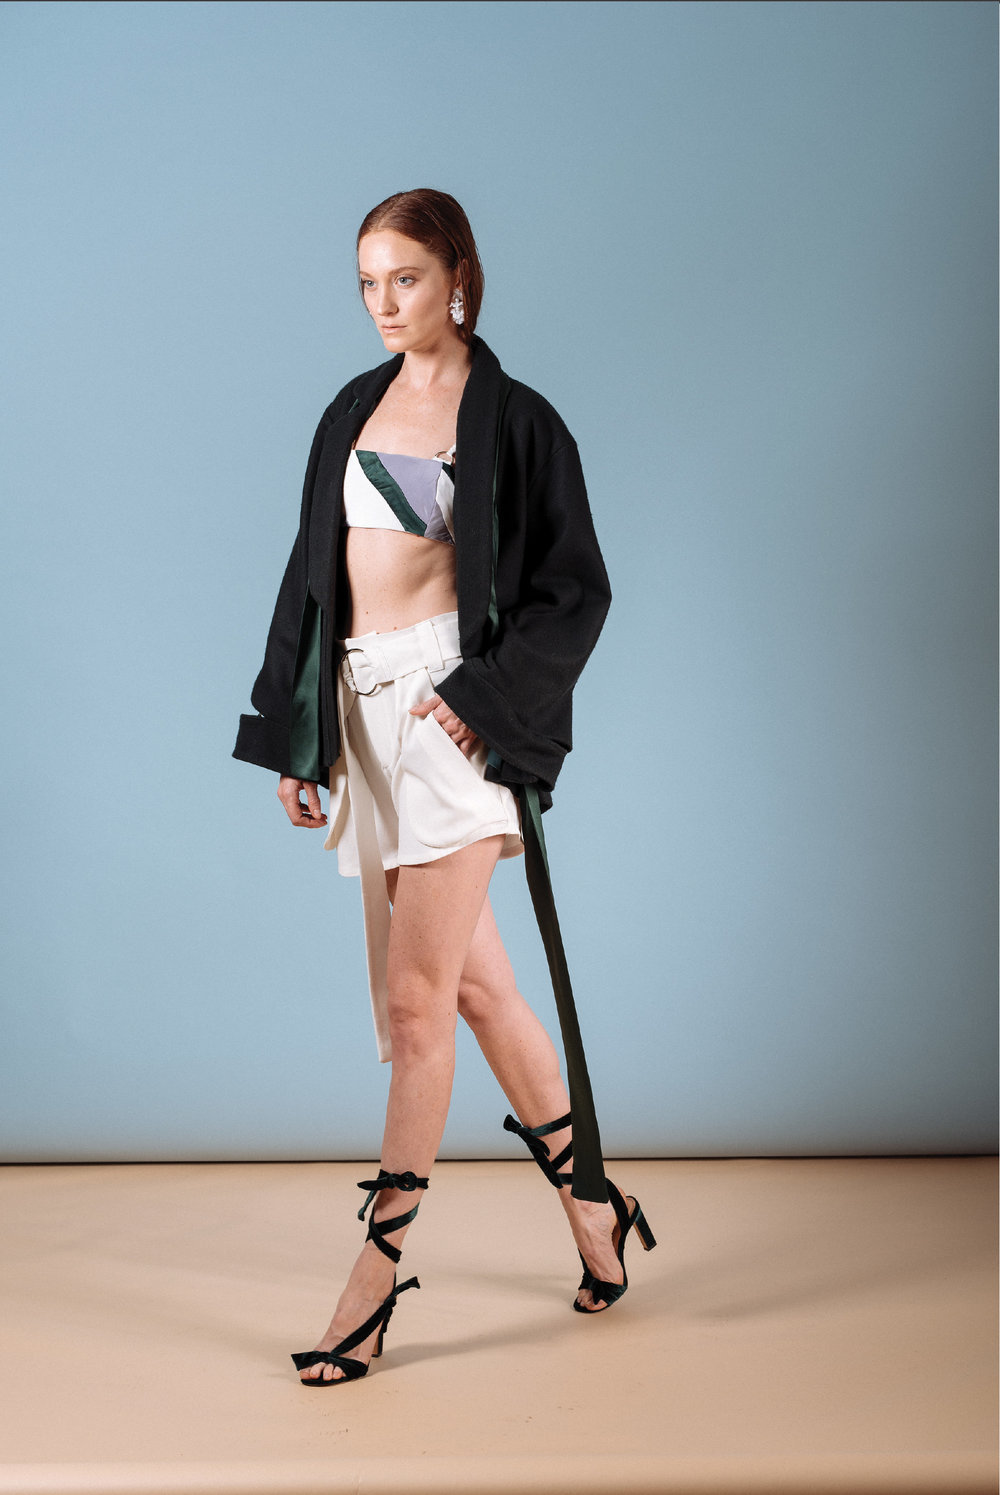 Look 3: #402 Frida Wrap Jacket in Emerald, #412 Nara Zero-Waste Bralette, #408 Tomoe Shorts w/ Exterior Pockets in Cream